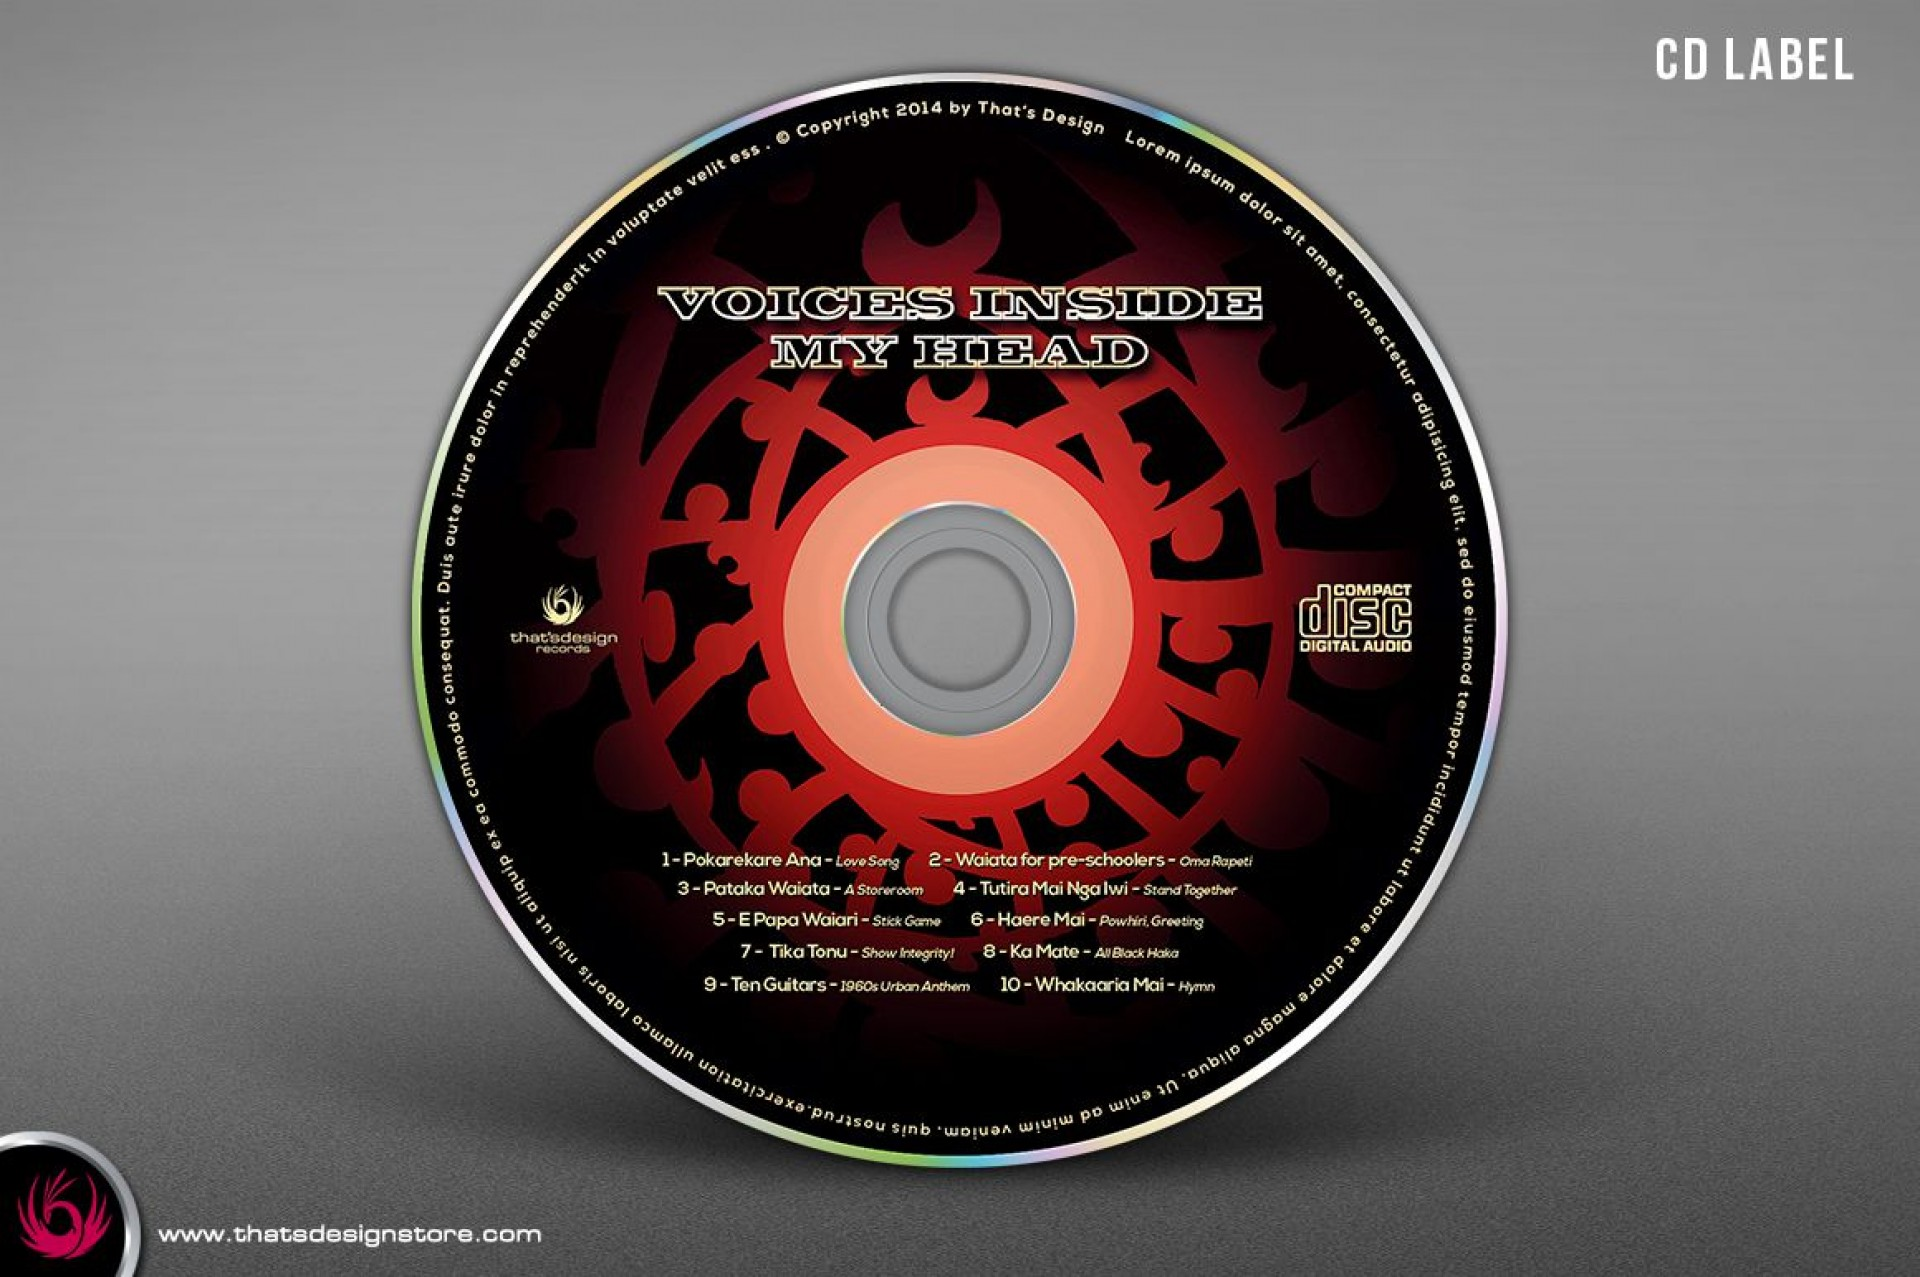 008 Excellent Cd Design Template Photoshop Photo  Label Psd Free Download Cover1920